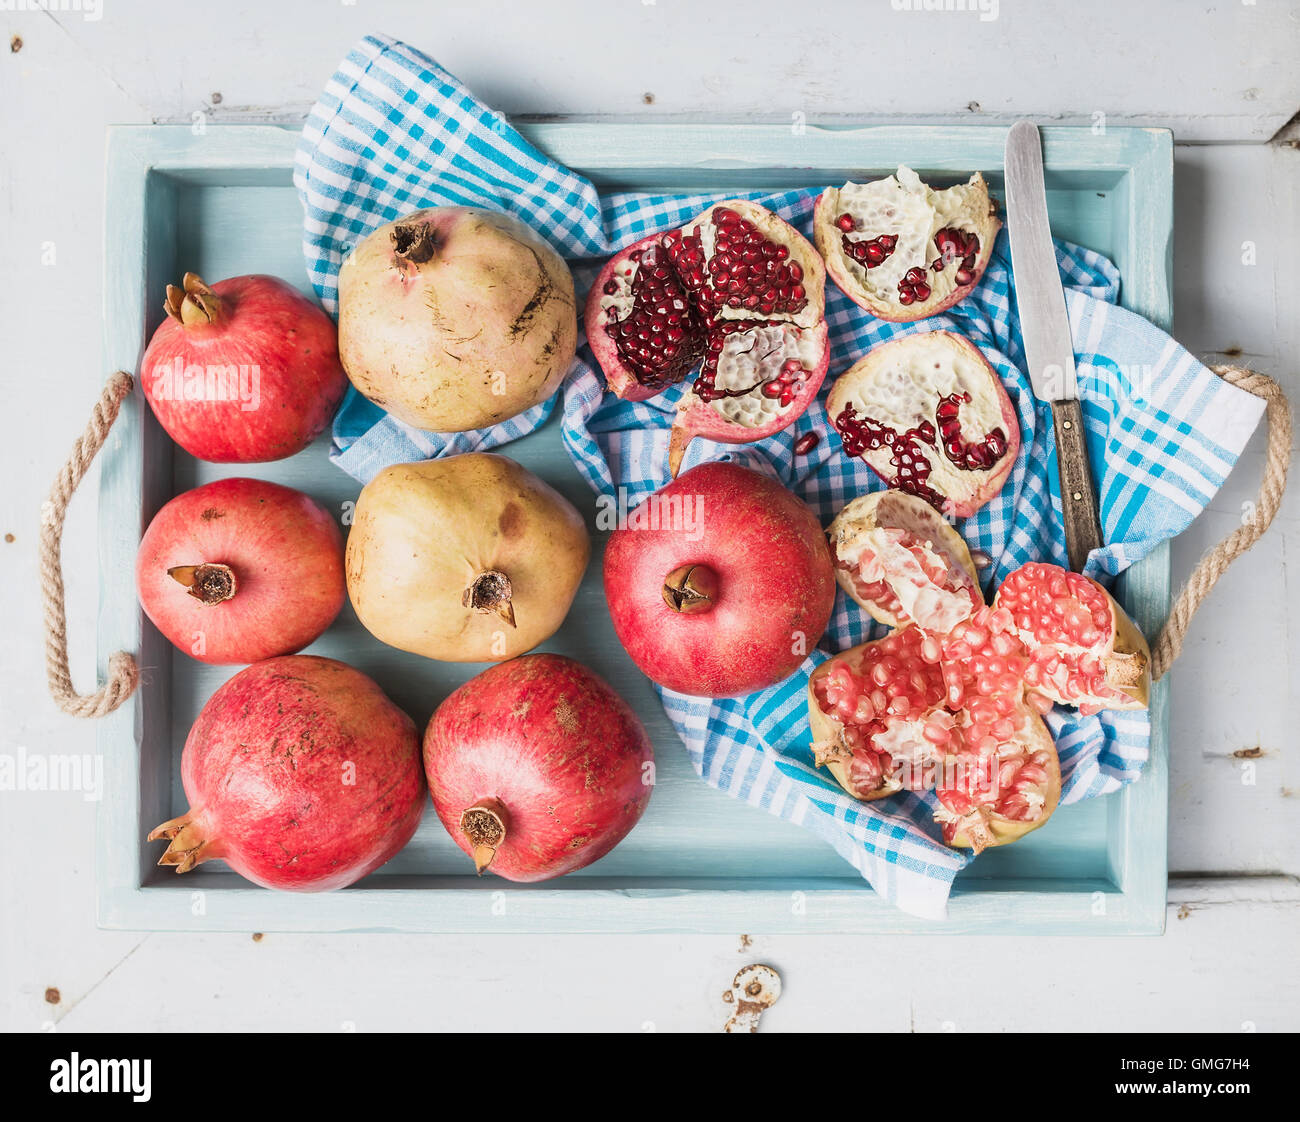 Red and white pomegranates with knife on kitchen towel in blue tray over light painted wooden backdrop - Stock Image